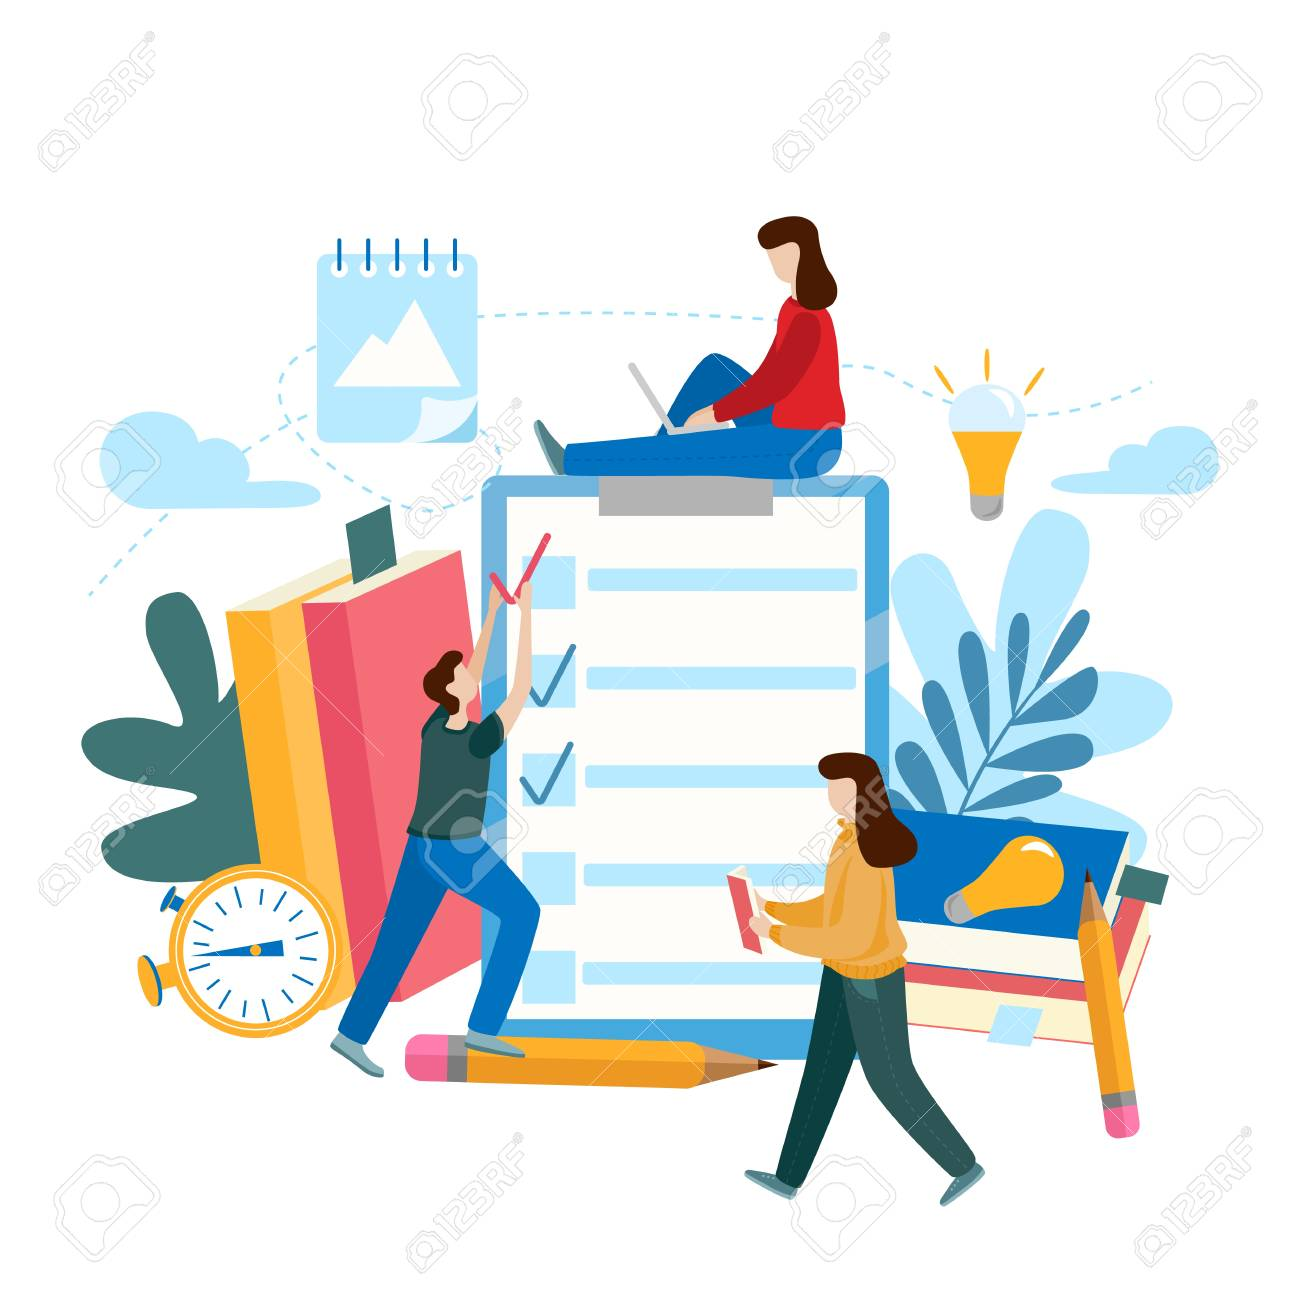 Survey or exam form long paper sheet with answered quiz checklist and success result. Flat vector concept of online exam, questionnaire form, online education, survey, internet quiz. - 126132708